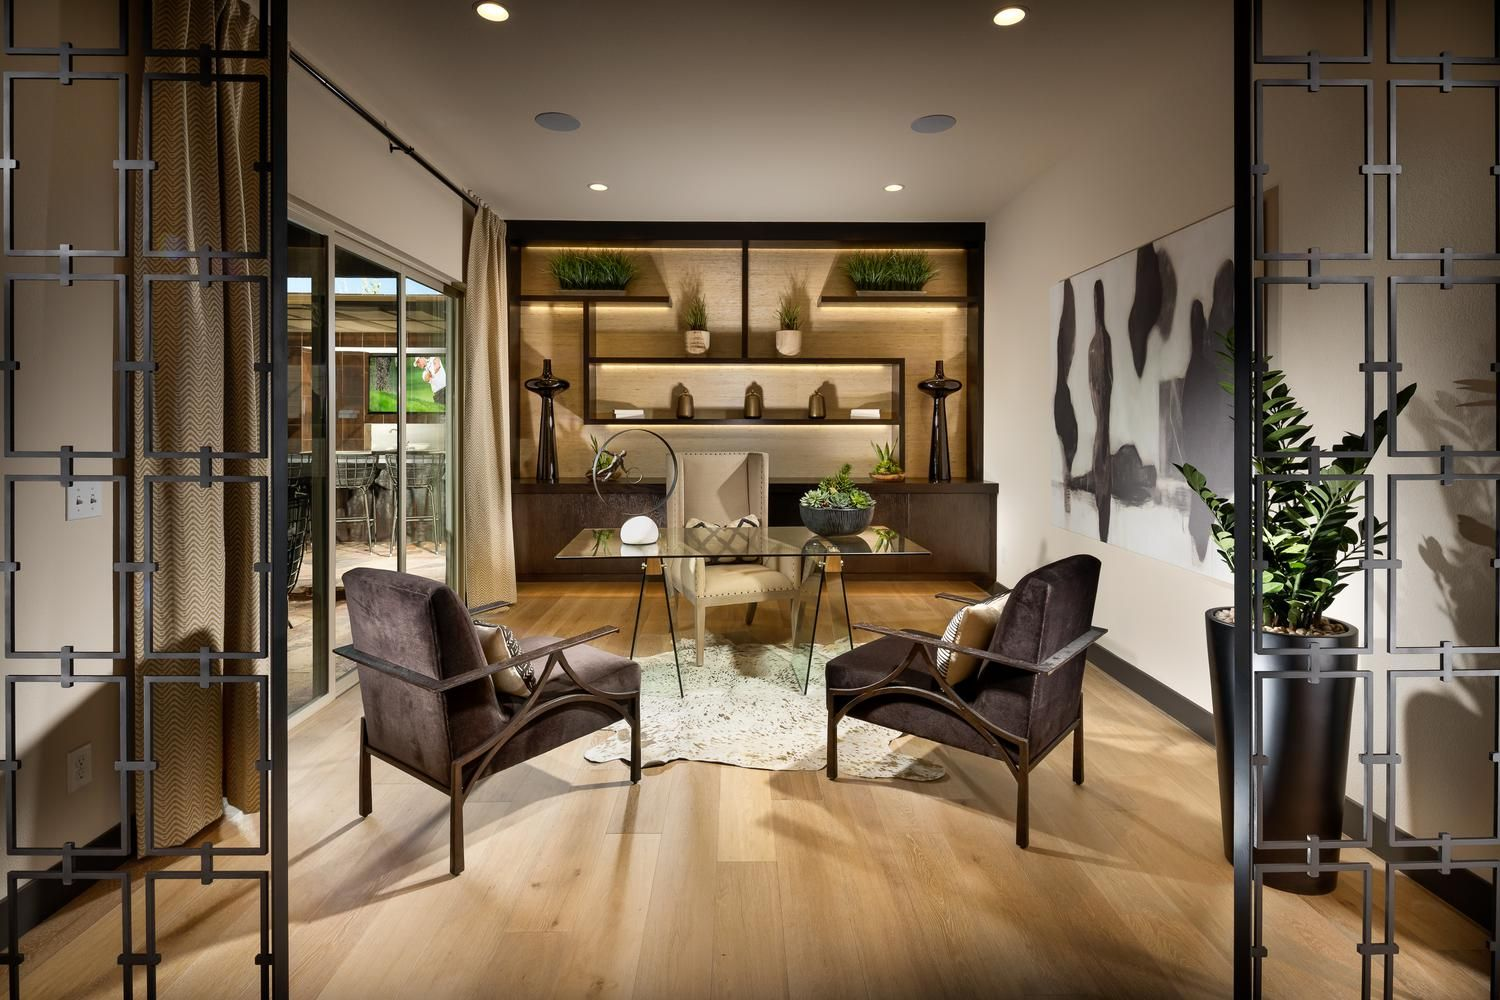 6 tips to feng shui your home office how to feng shui